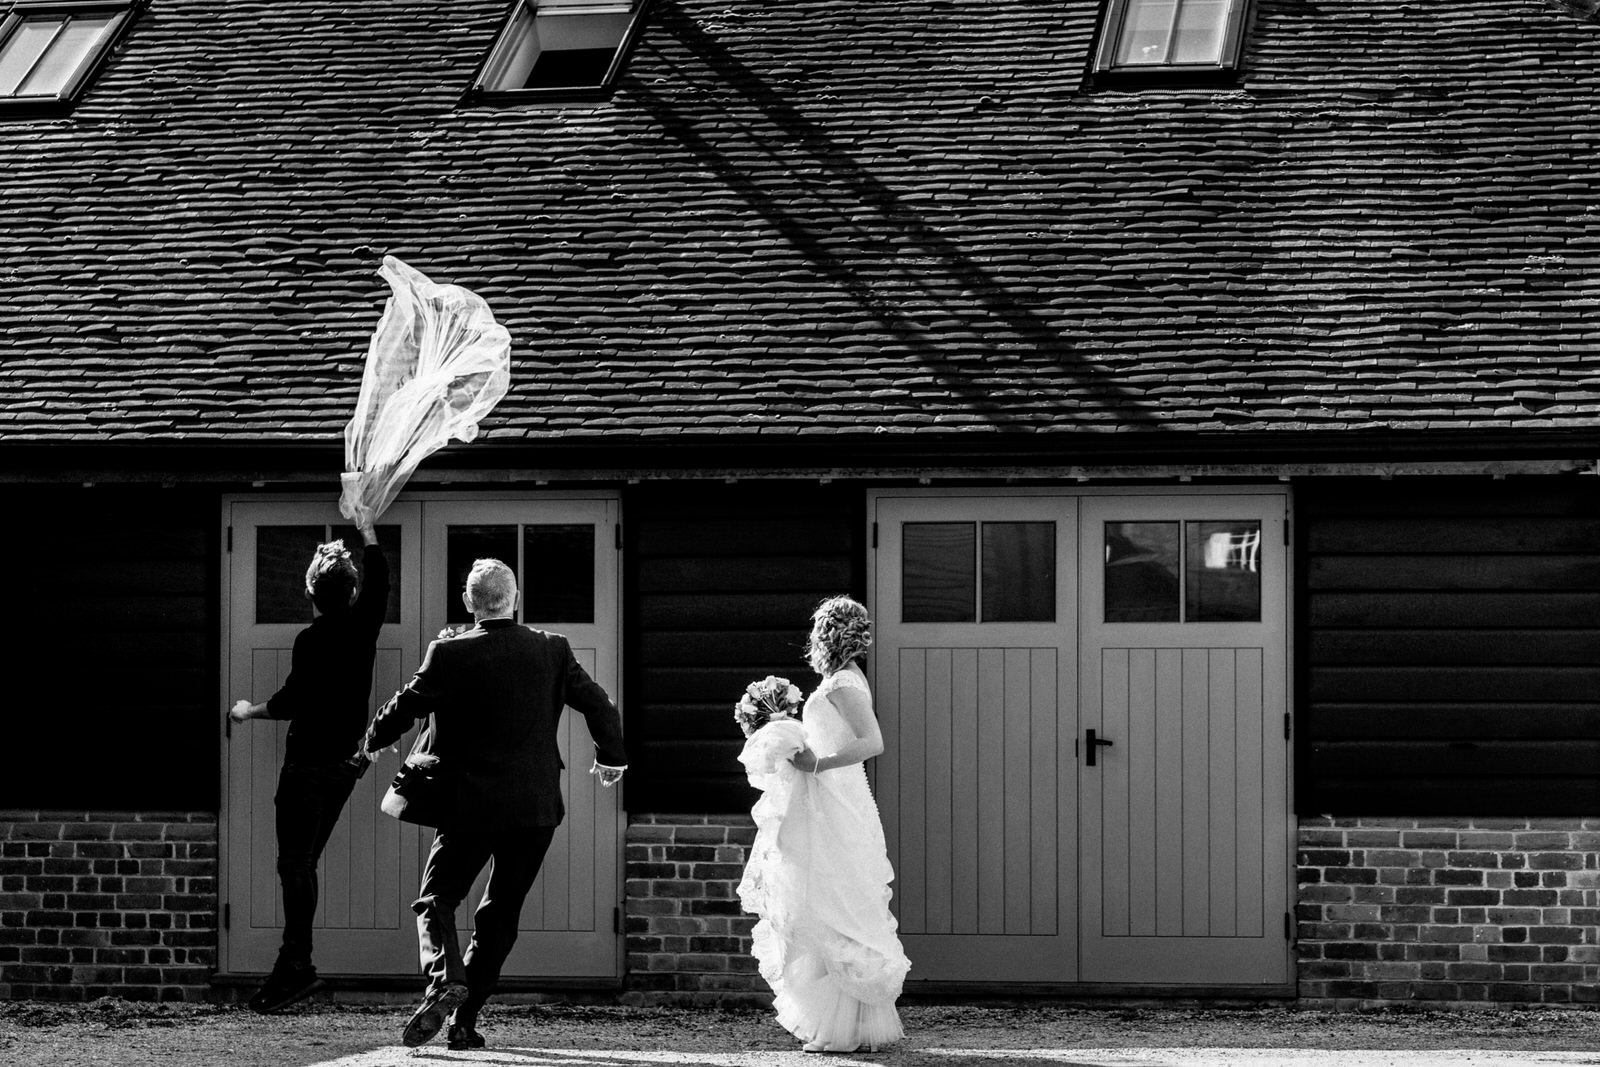 veil flying off bride